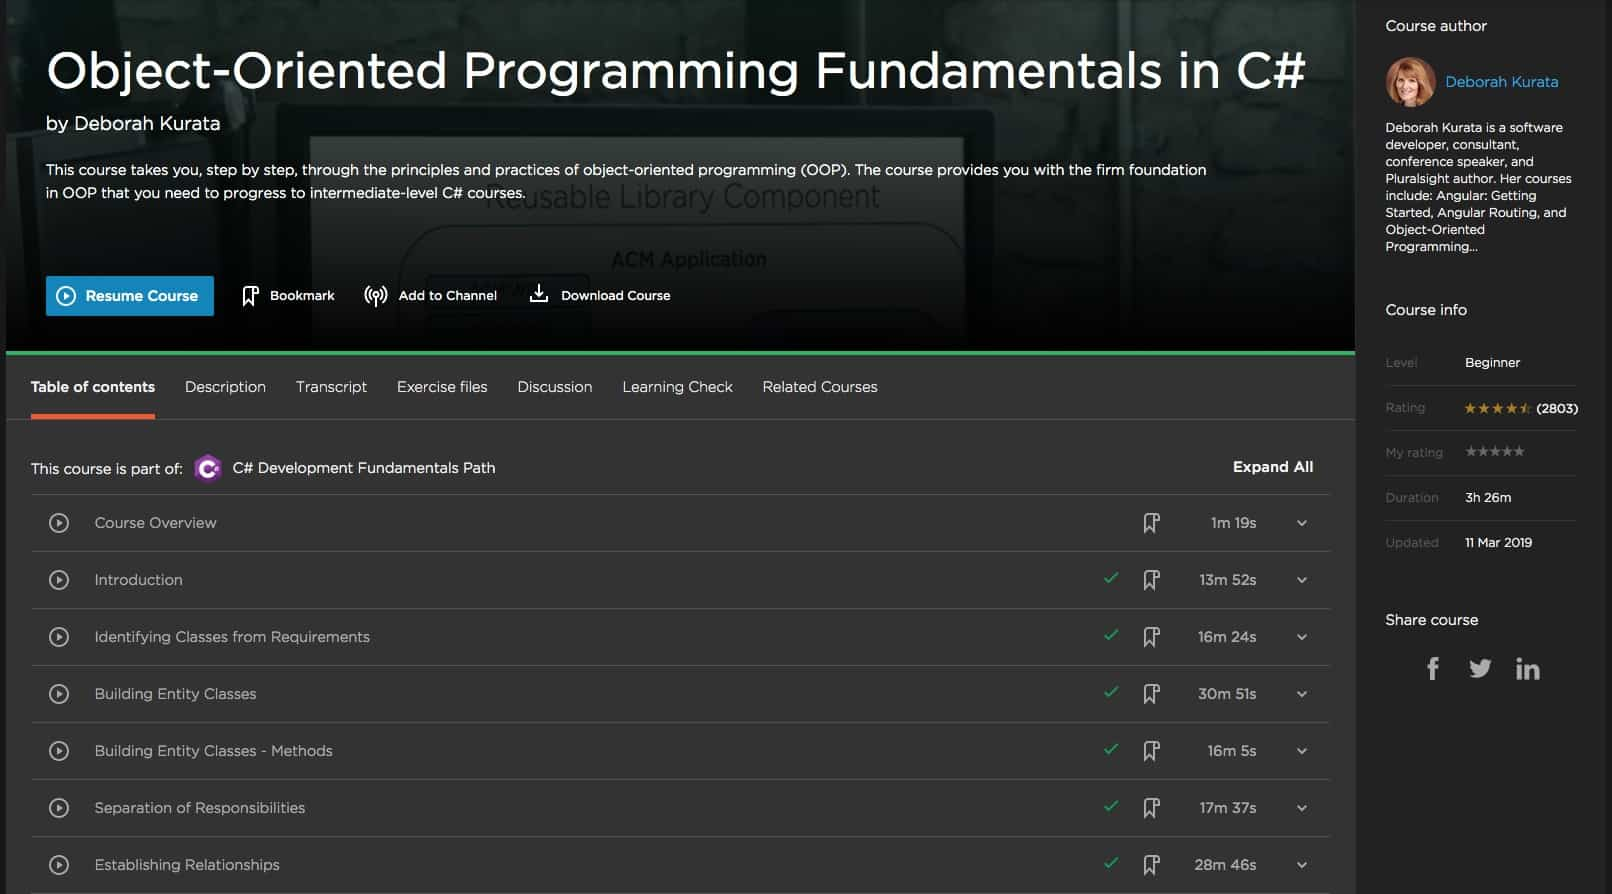 Object-Oriented Programming Fundamentals in C-sharp